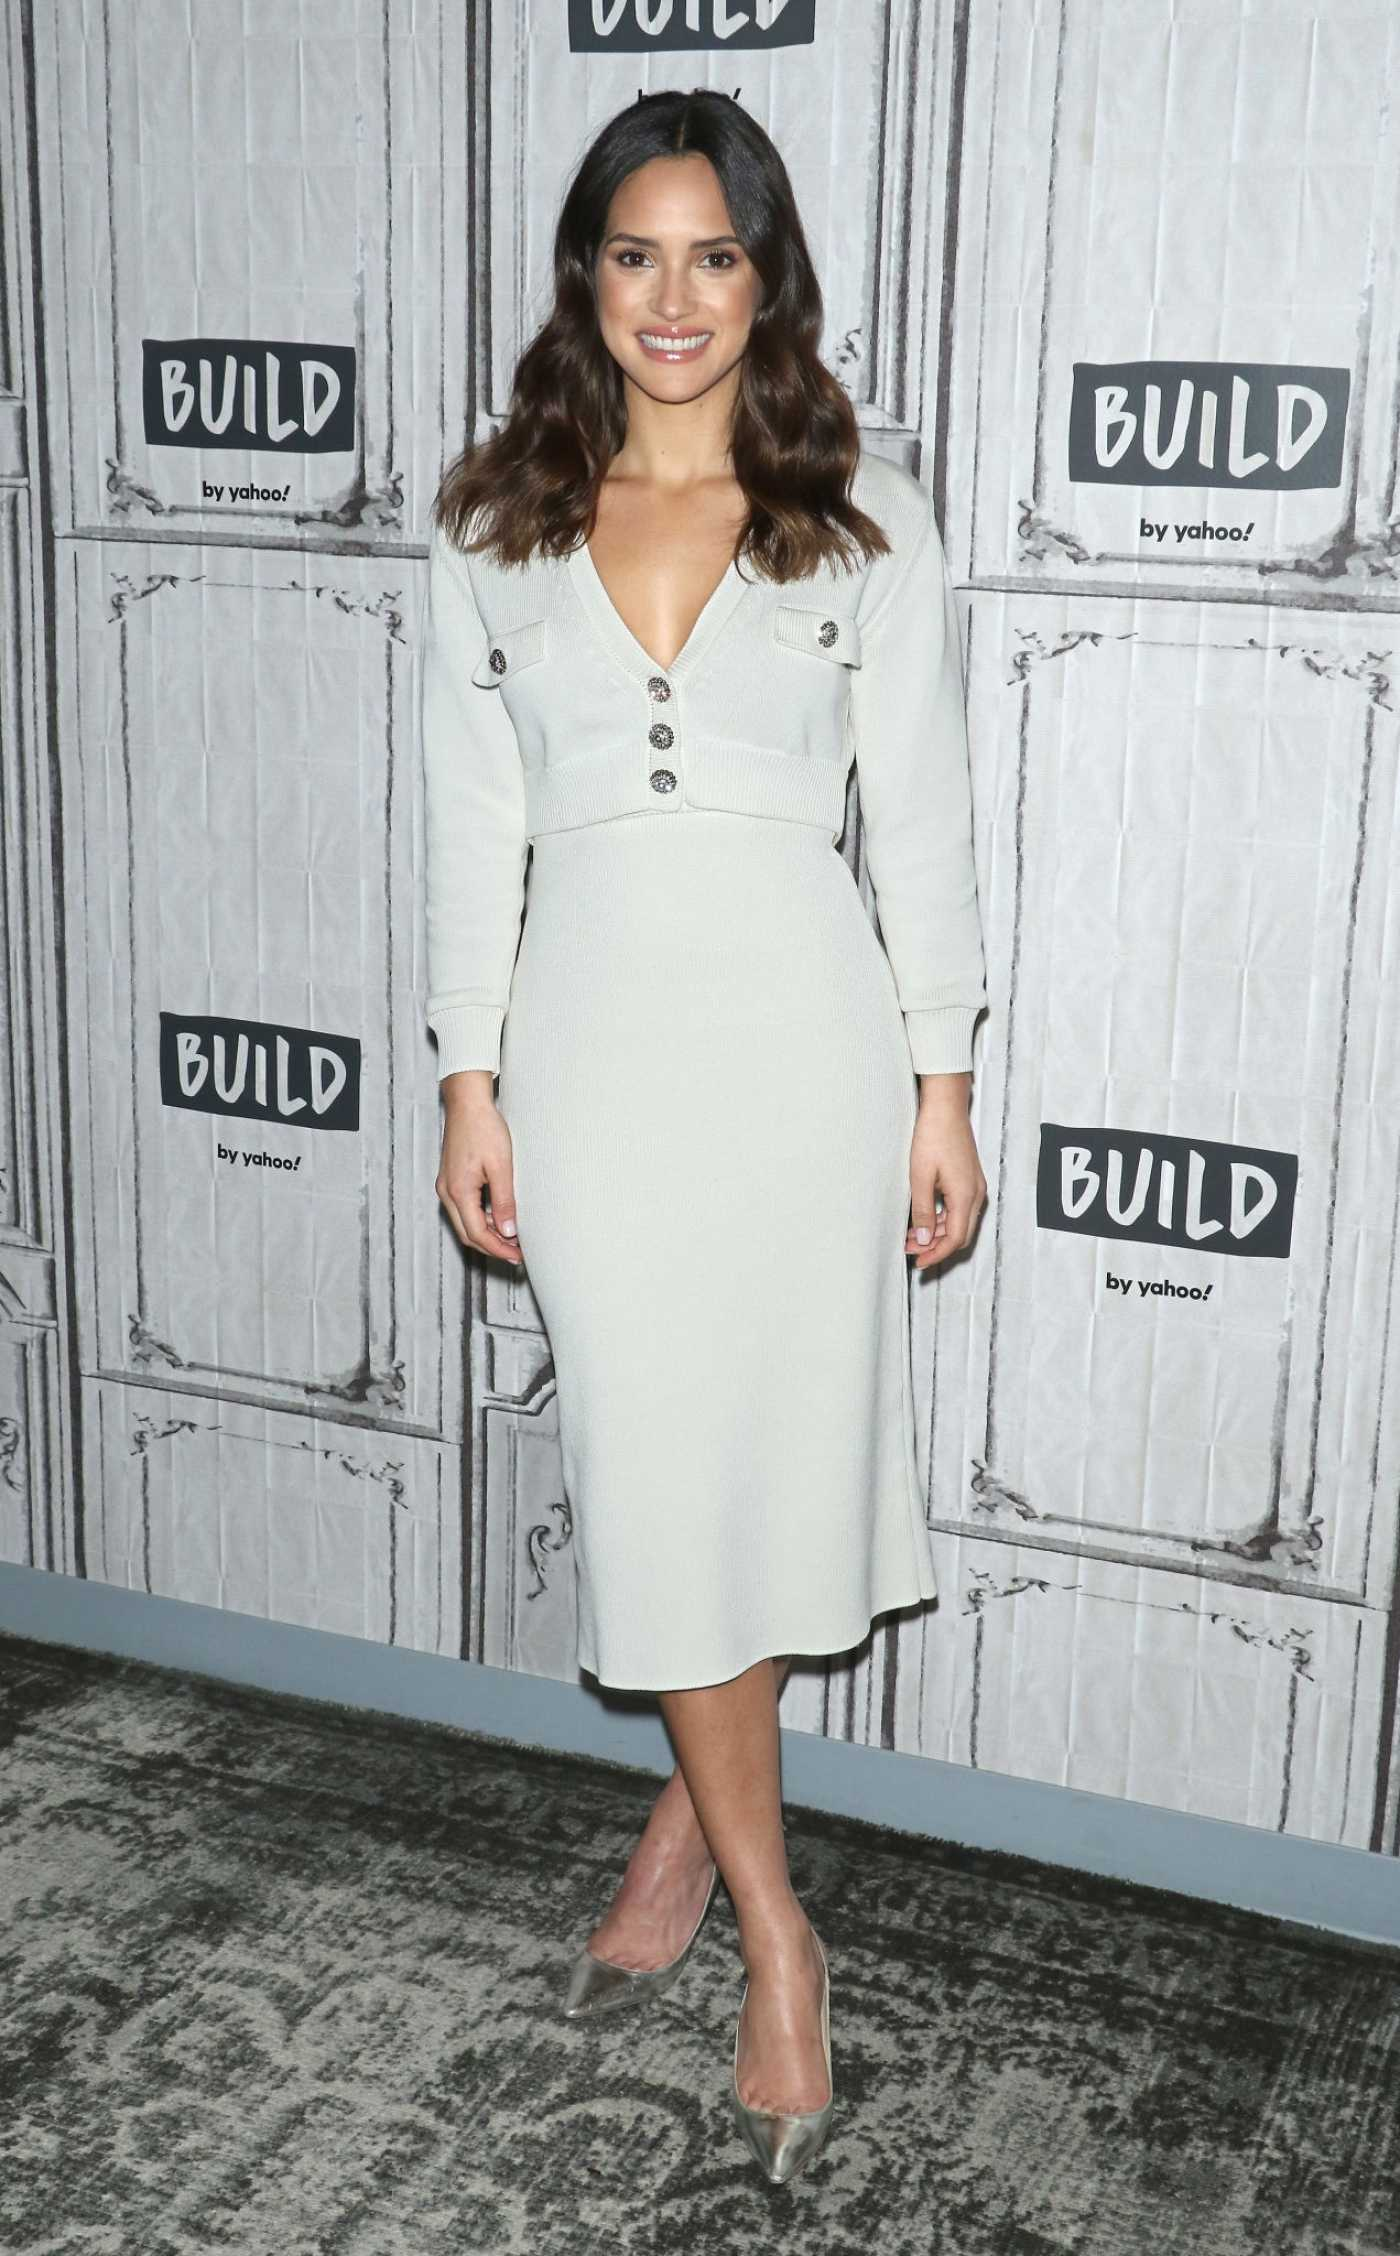 Adria Arjona Attends the Build Series in New York City 12/11/2019